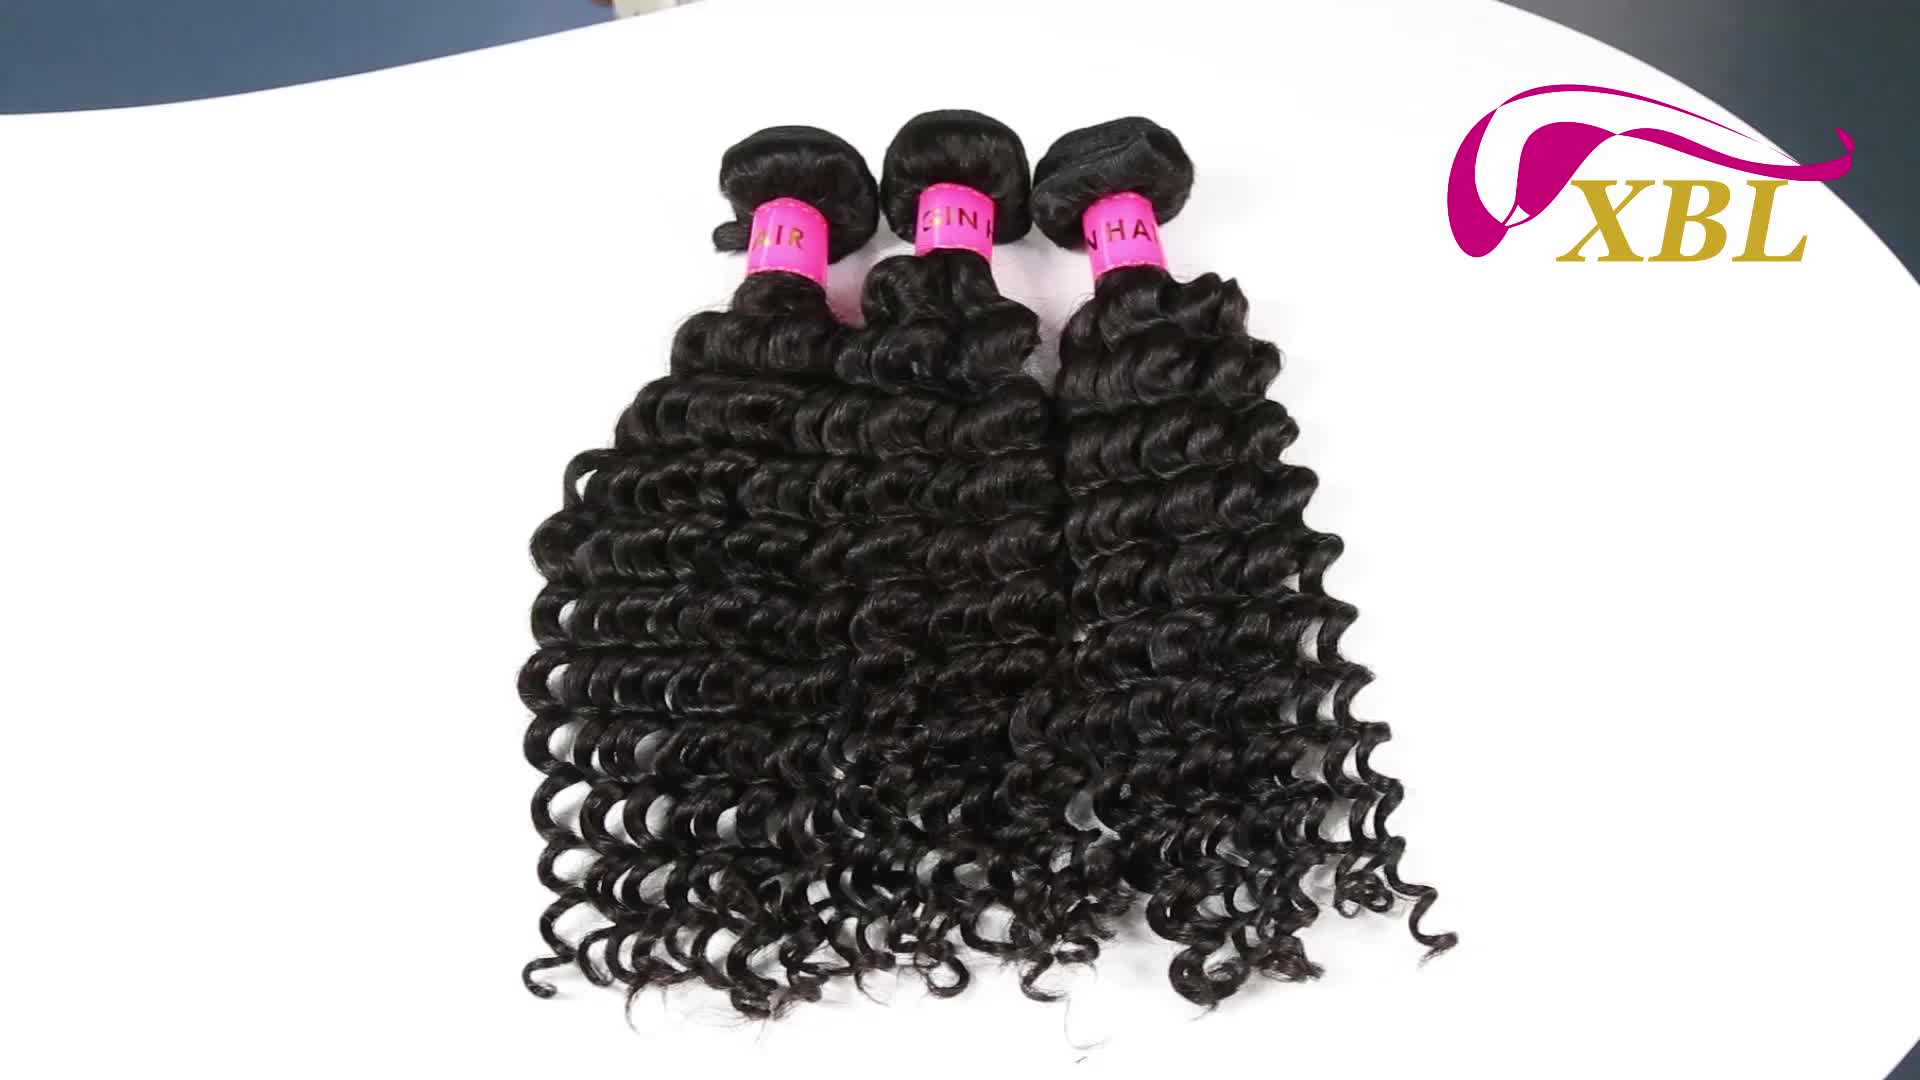 Best Selling Deep Wave Human Hair Weave Bundle 1/3 Piece 10-26 Inch Natural Black Human Hair Extension Free Shipping